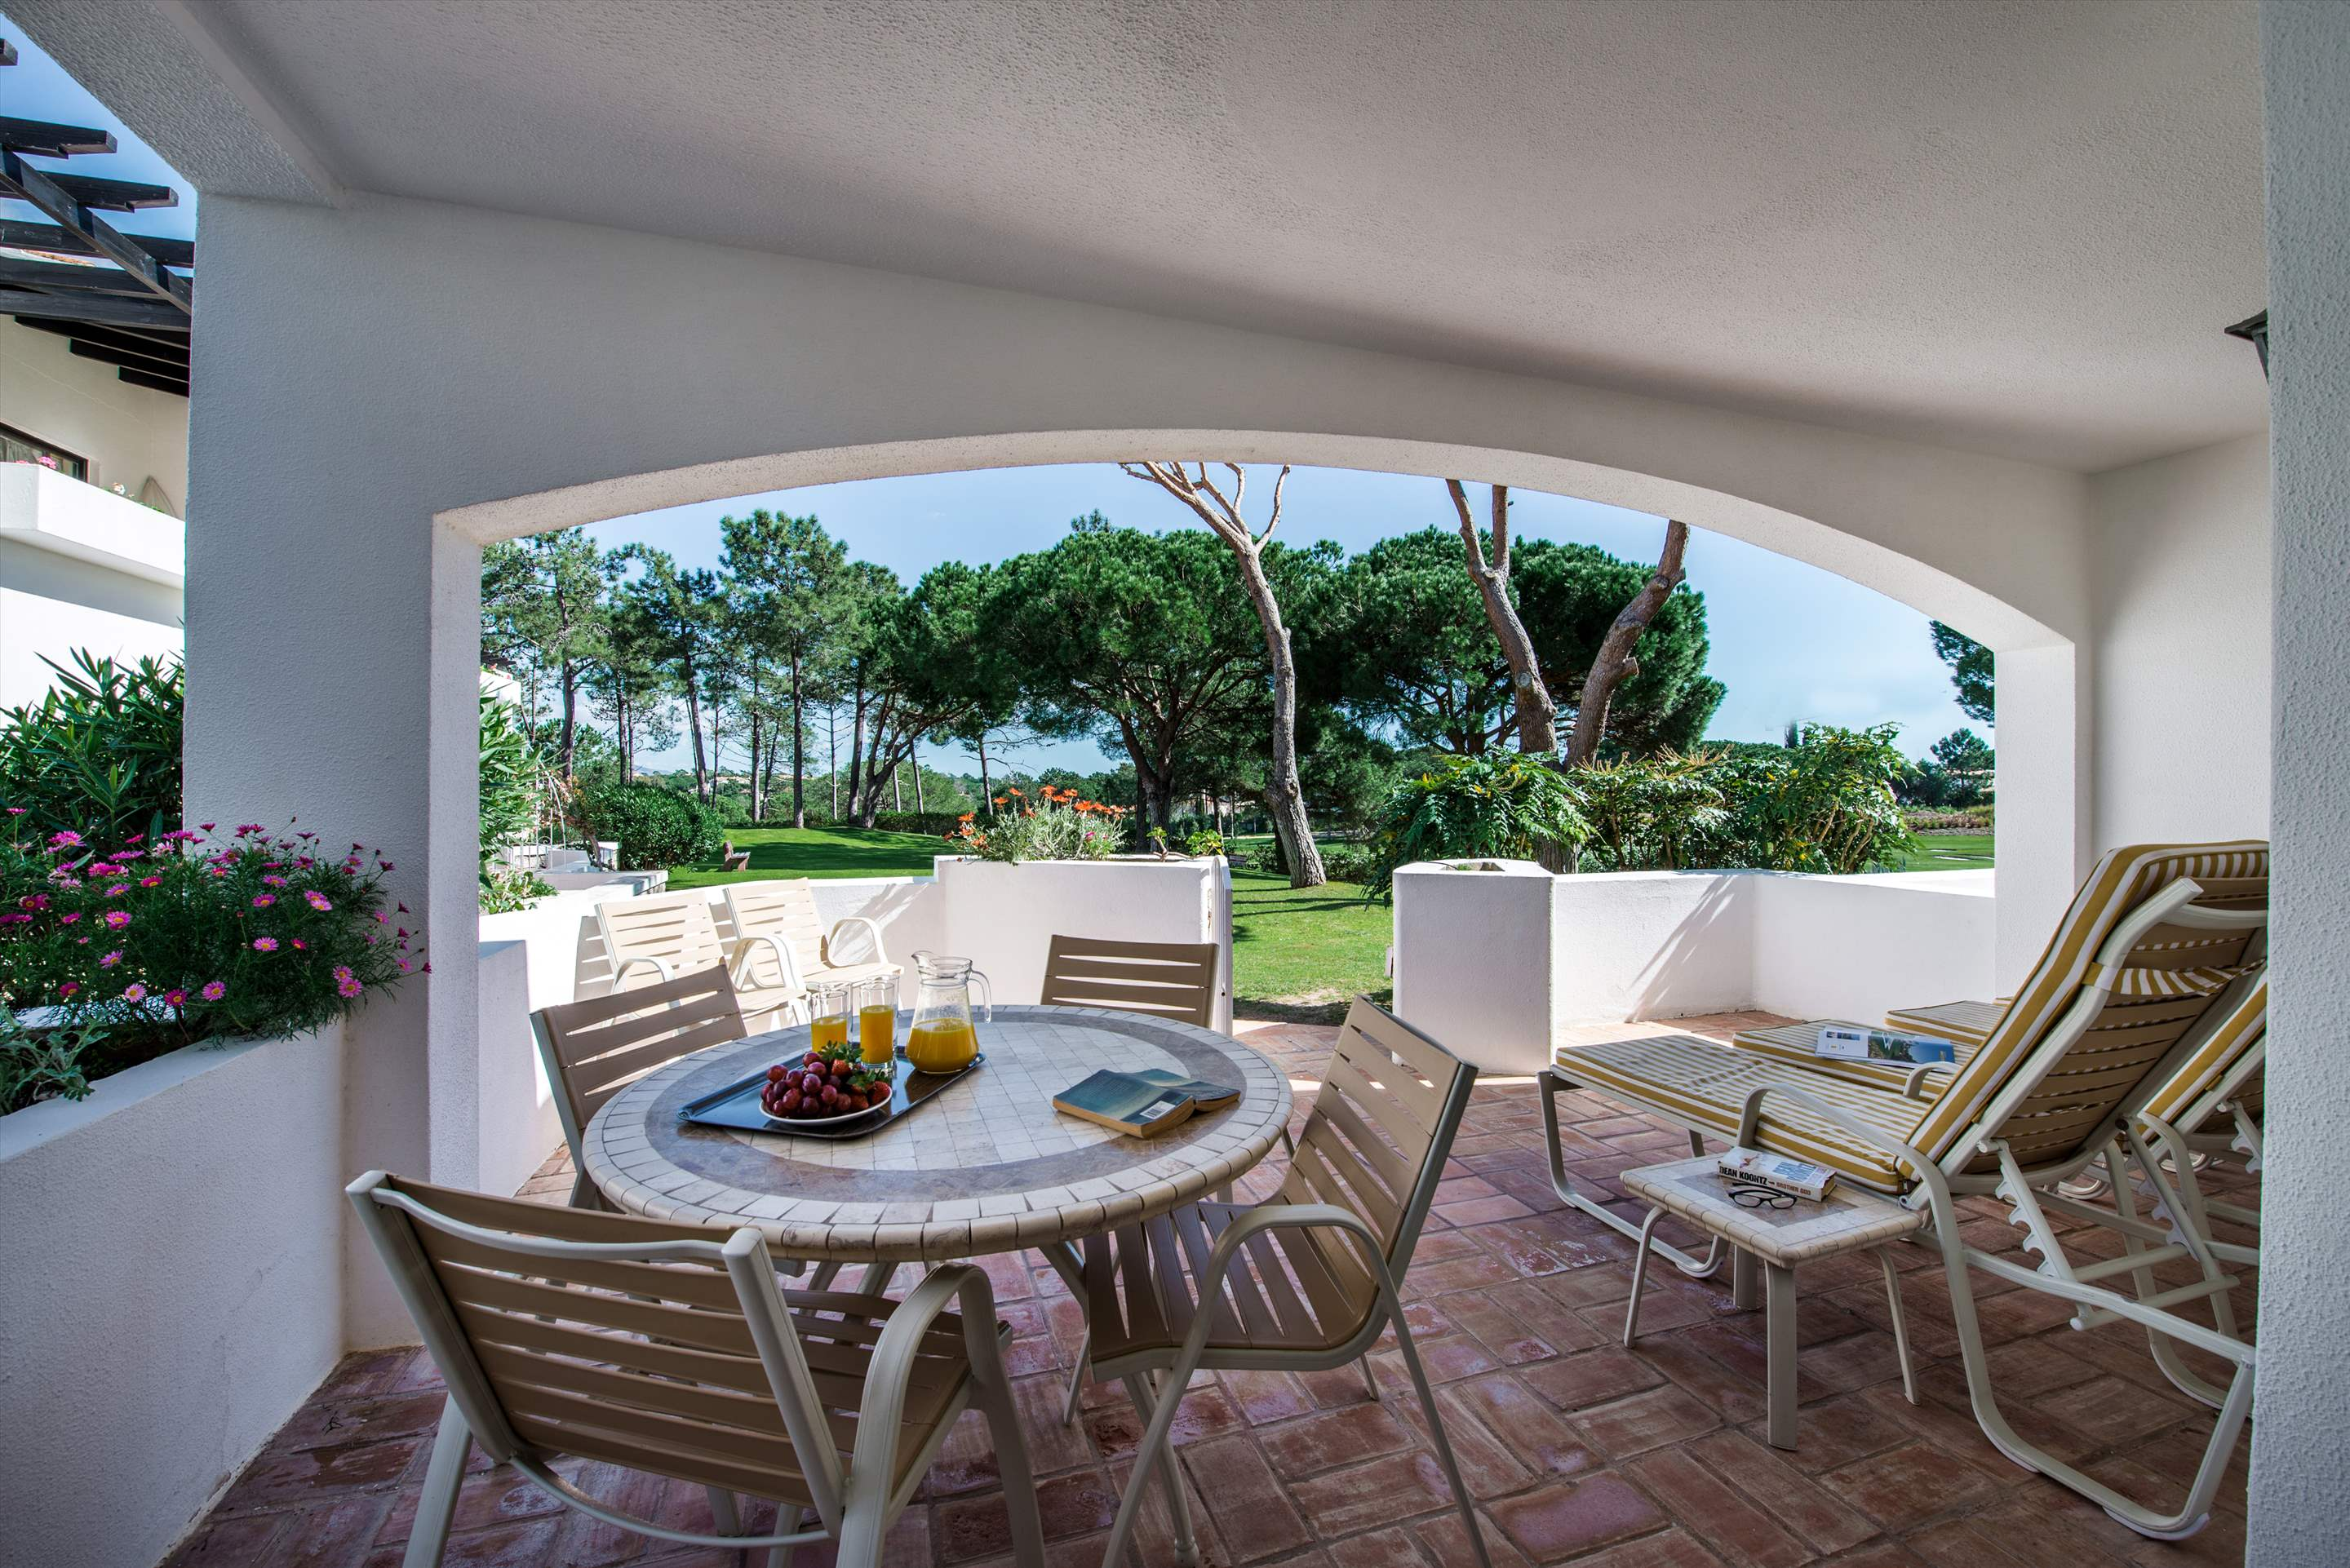 Four Seasons Country Club 1 bed, Superior - Saturday Arrival, 1 bedroom apartment in Four Seasons Country Club, Algarve Photo #2